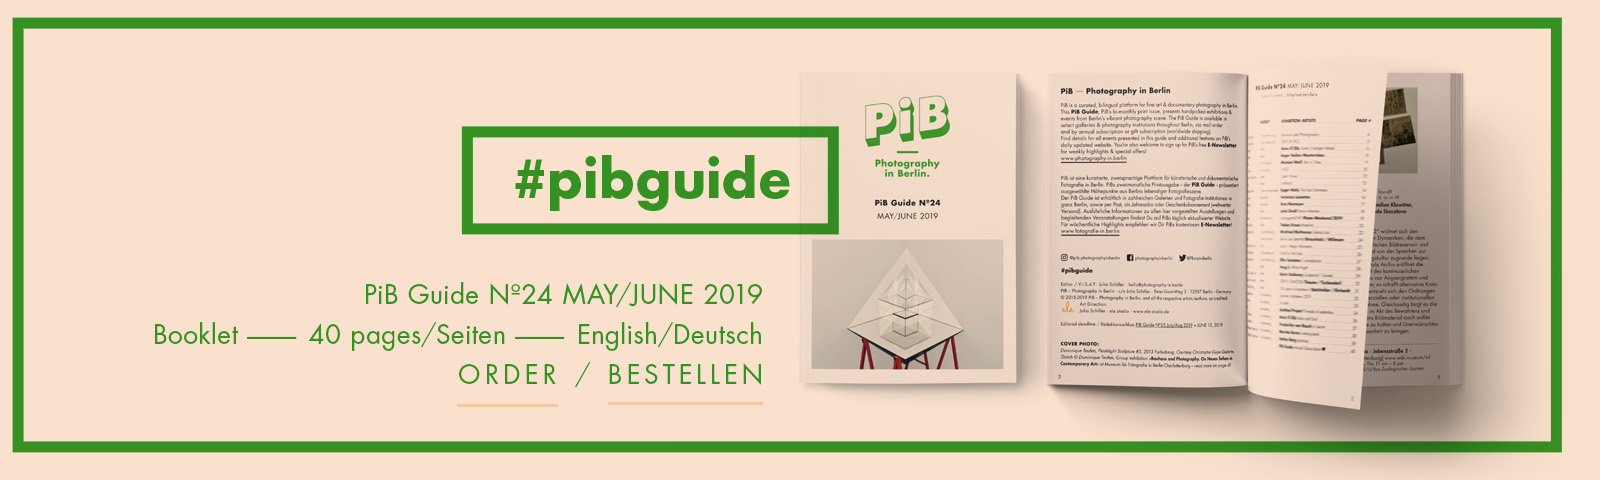 The PiB Guide Nº24 MAY/JUNE 2019 © PiB – Photography In Berlin. #pibguide. COVER PHOTO: Dominique Teufen, Flashlight Sculpture #3, 2013 Farbabzug, Courtesy Christophe Guye Galerie, Zürich © Dominique Teufen. Group Exhibition »Bauhaus And Photography« At Museum Für Fotografie In Berlin-Charlottenburg.